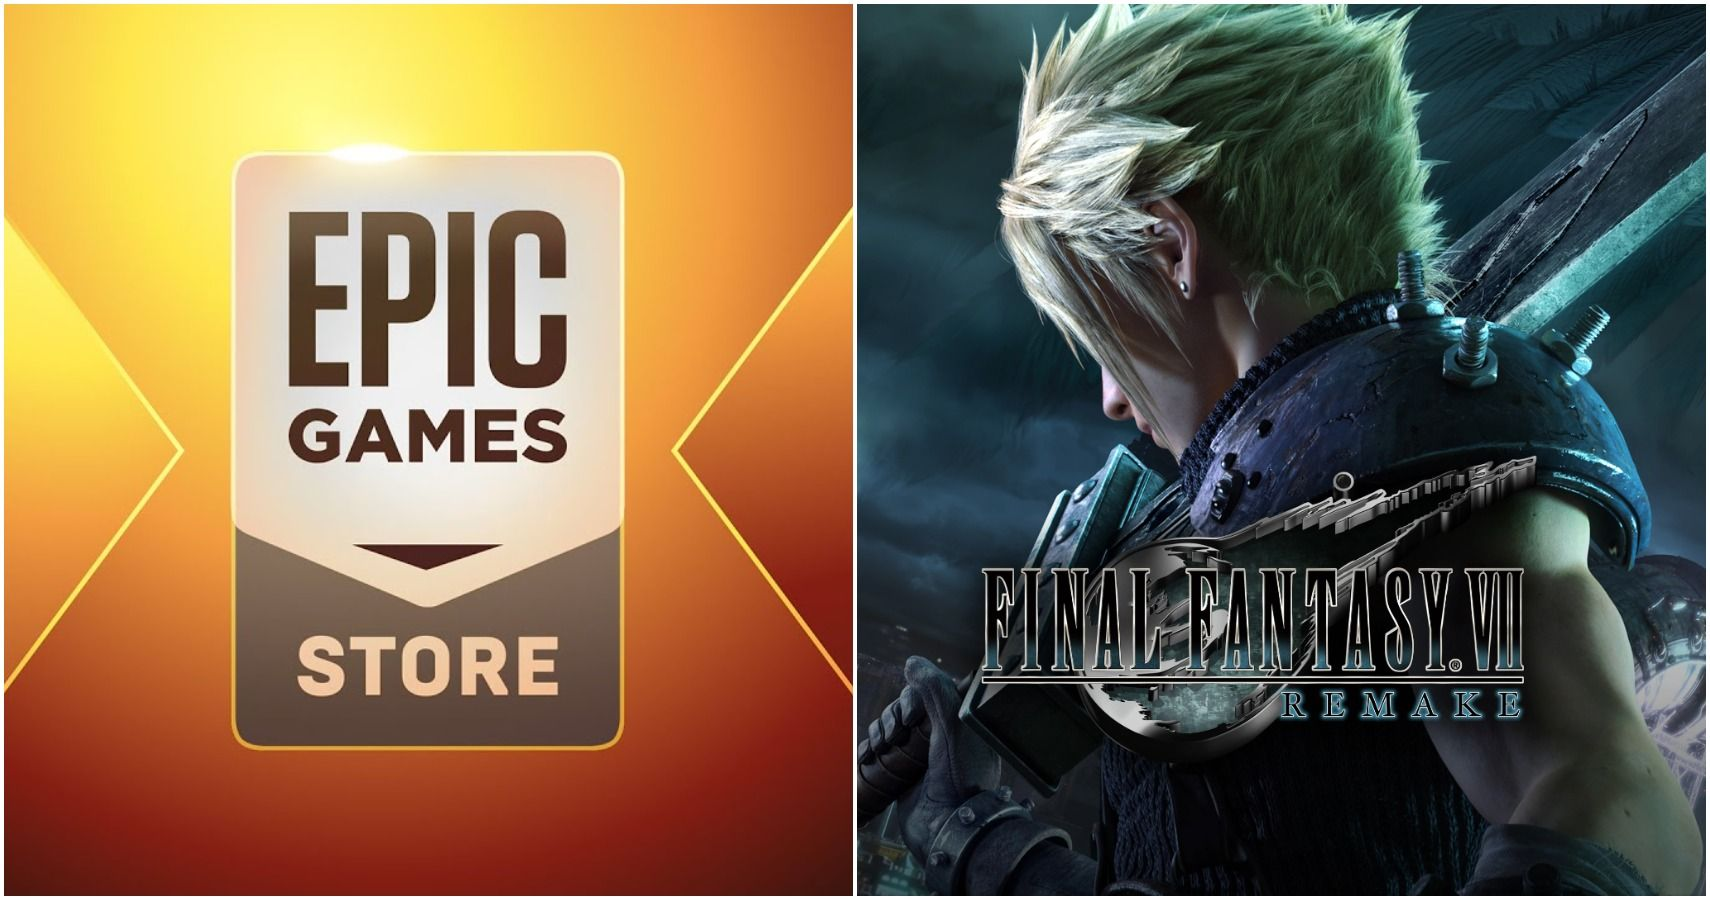 TheGamer - Gaming News, Reviews, Exclusives, More cover image